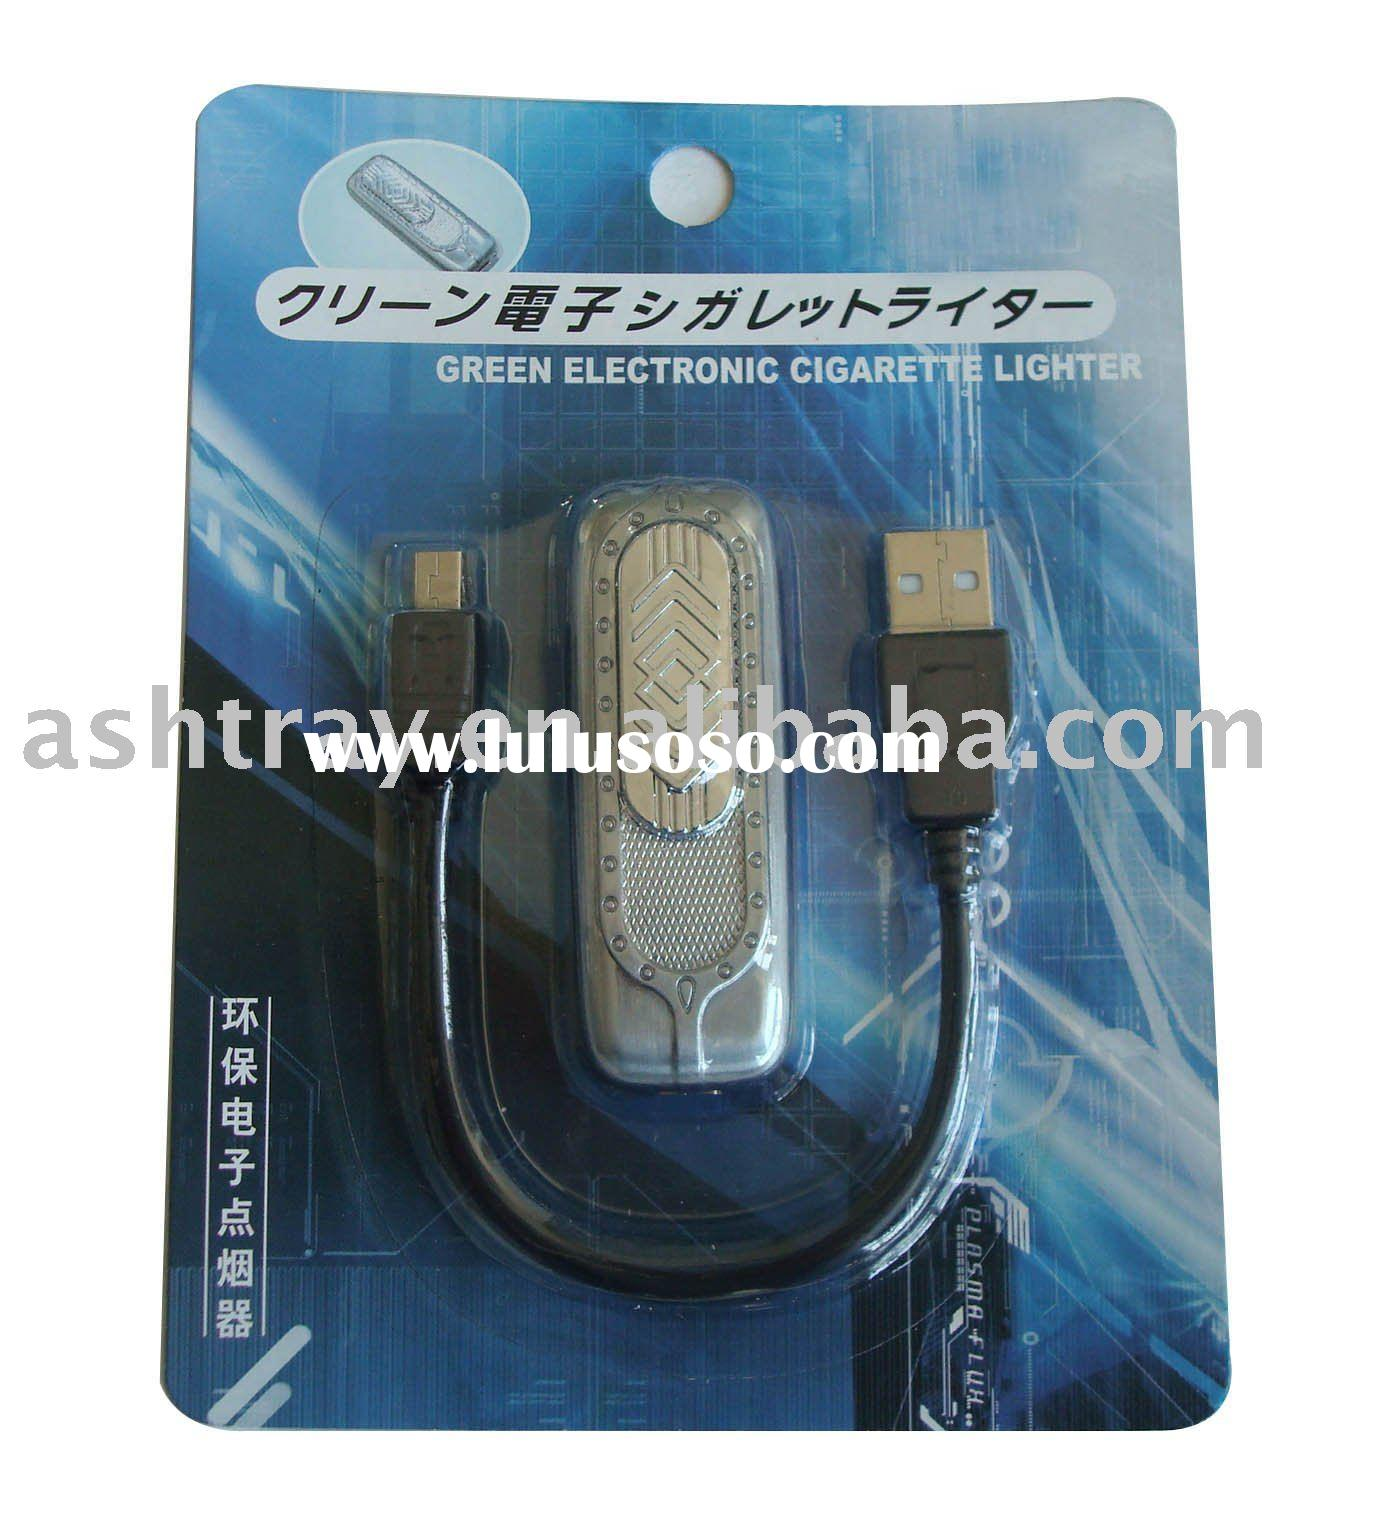 USB rechargeable lighter (GL001)